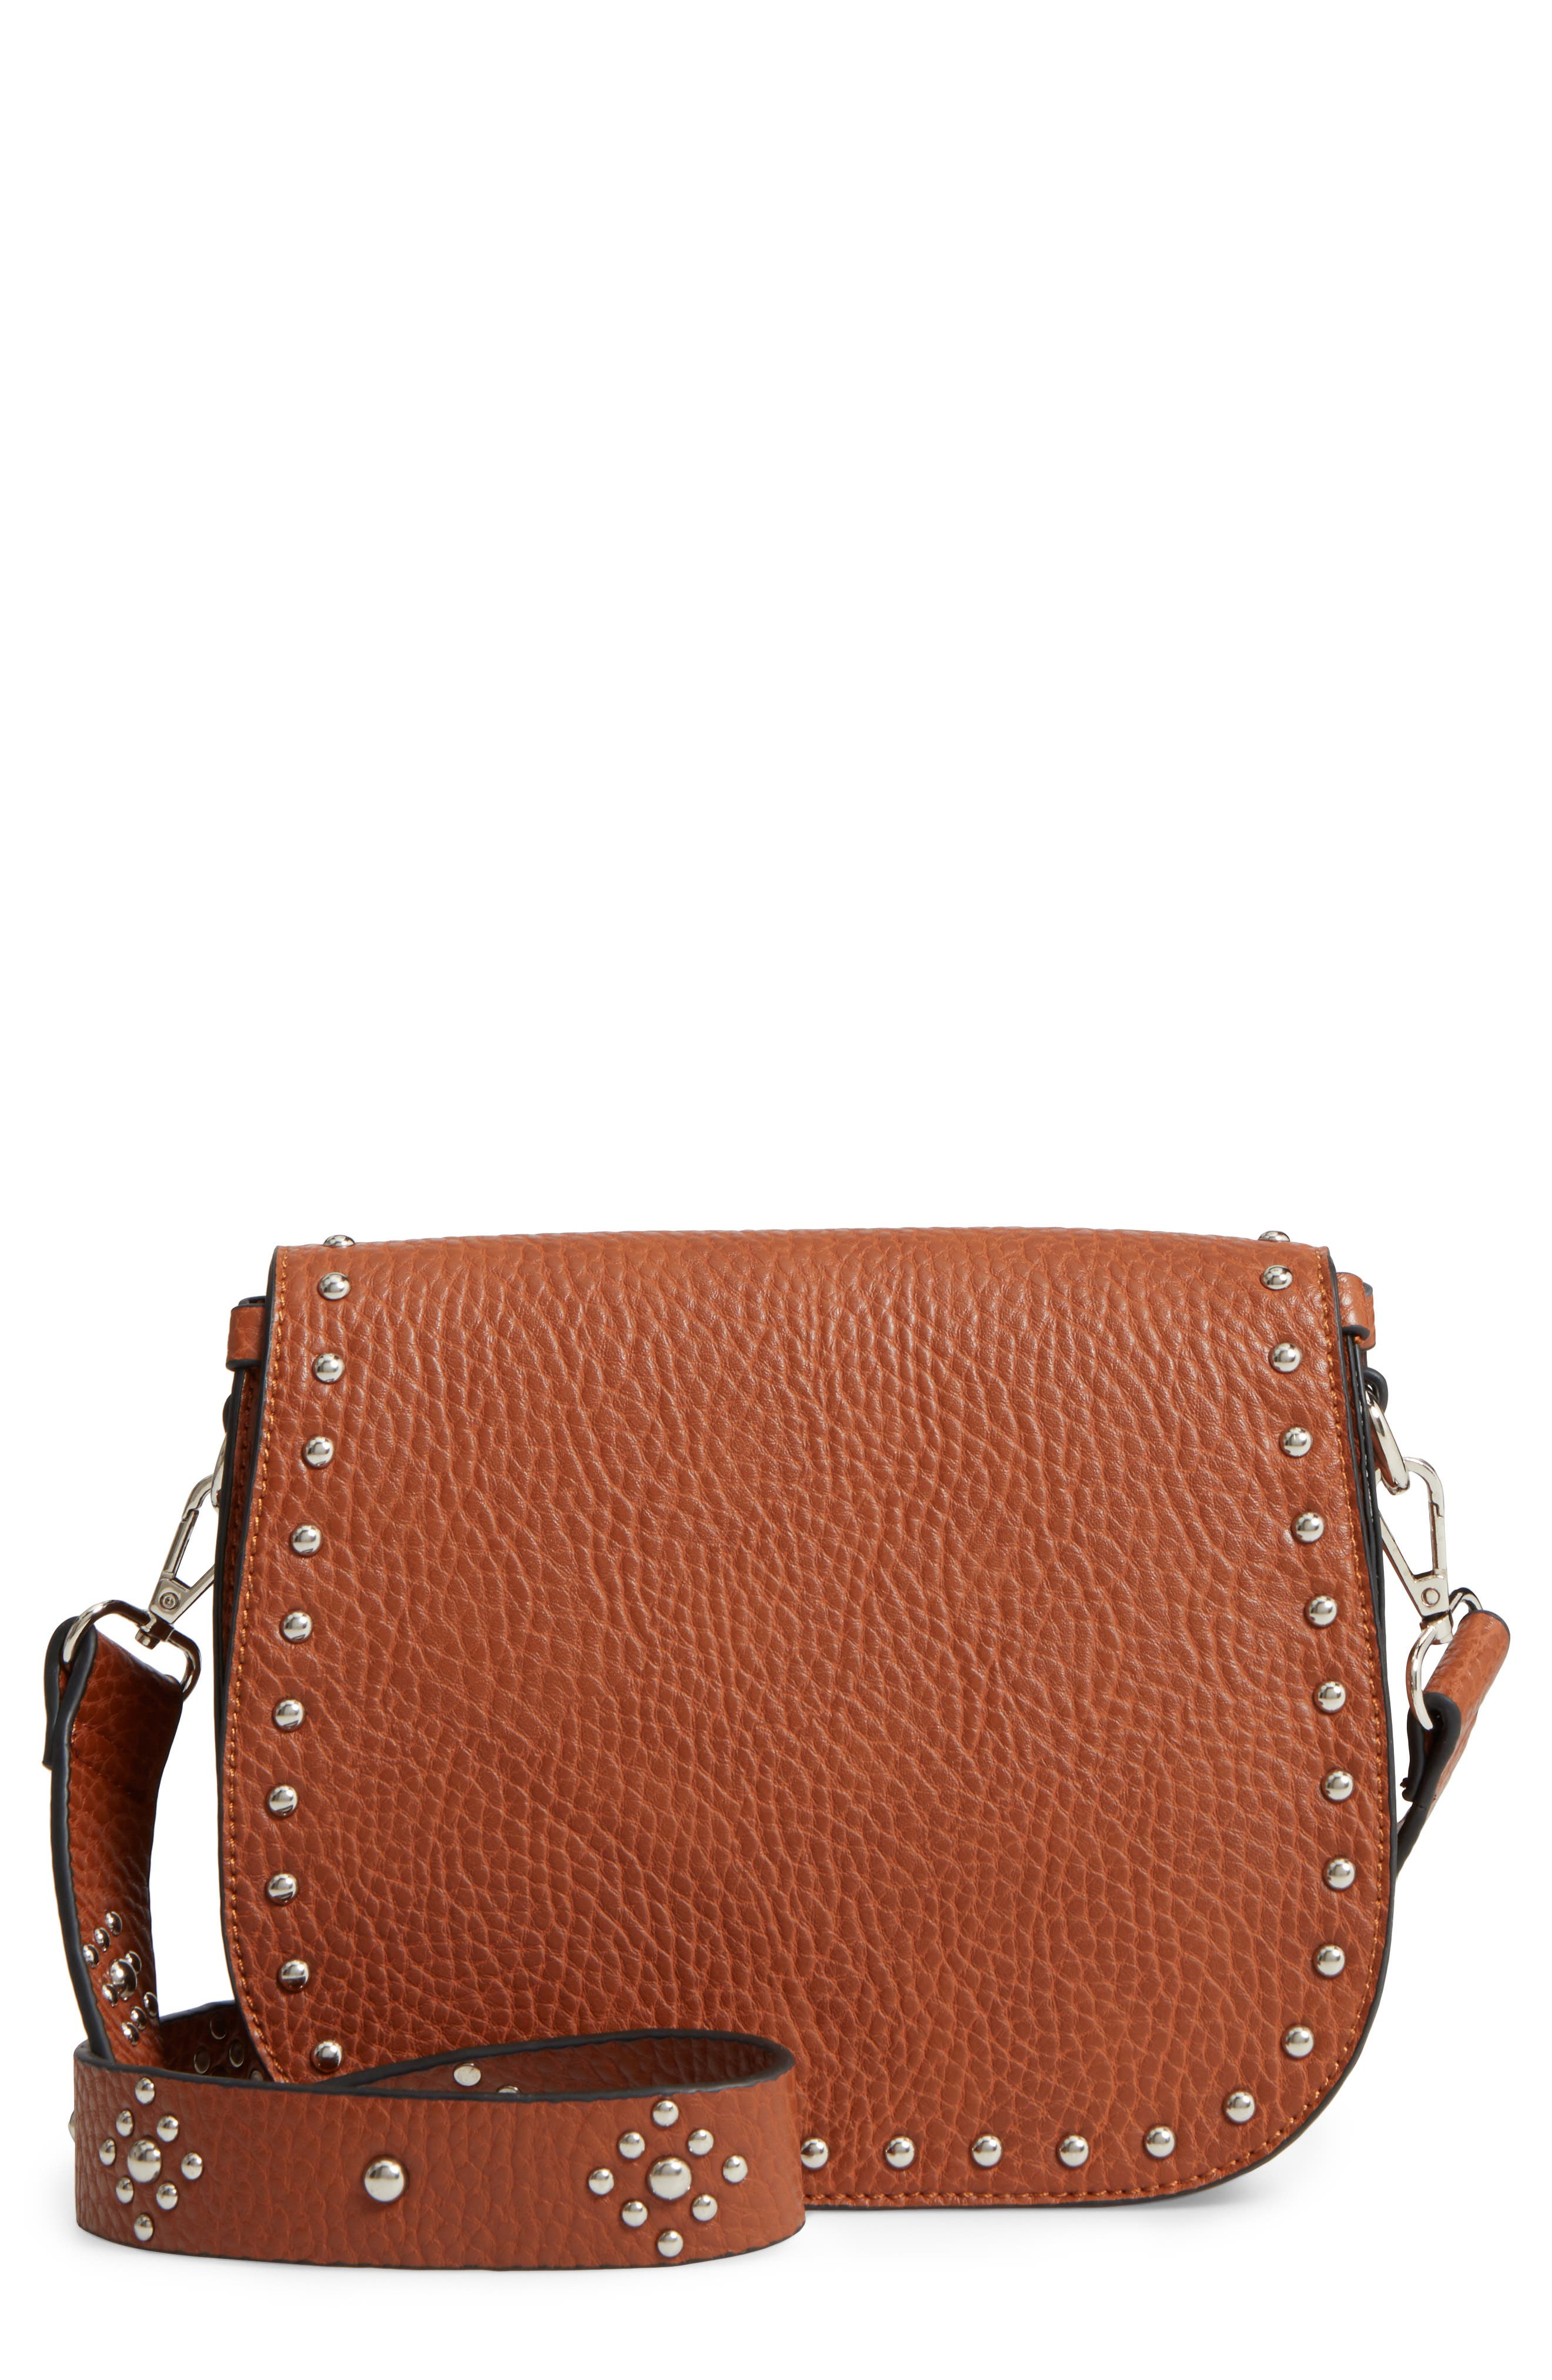 Linea Pelle Studded Faux Leather Satchel